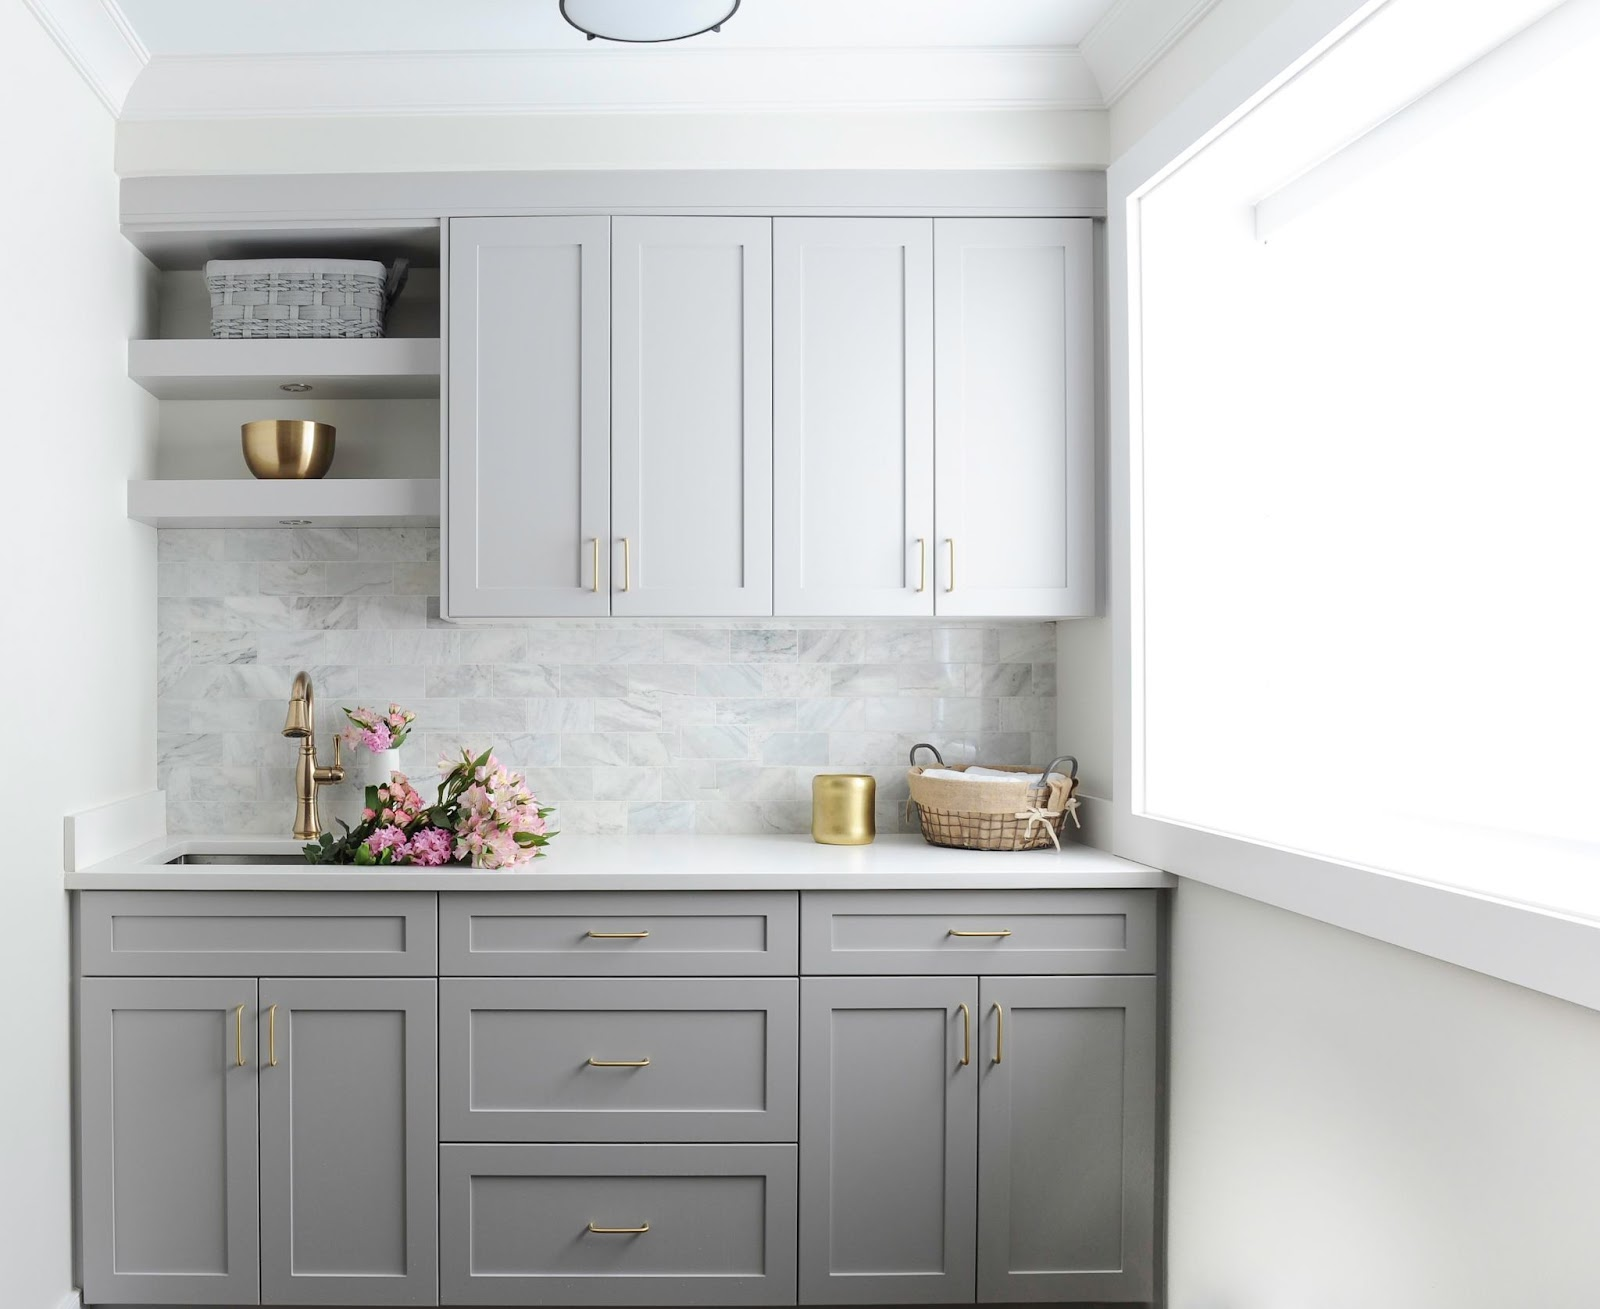 maria-decotiis-vancouver-ca-invest-in-interior-designer-beverage-center-with-gray-cabinets-and-gold-hardware